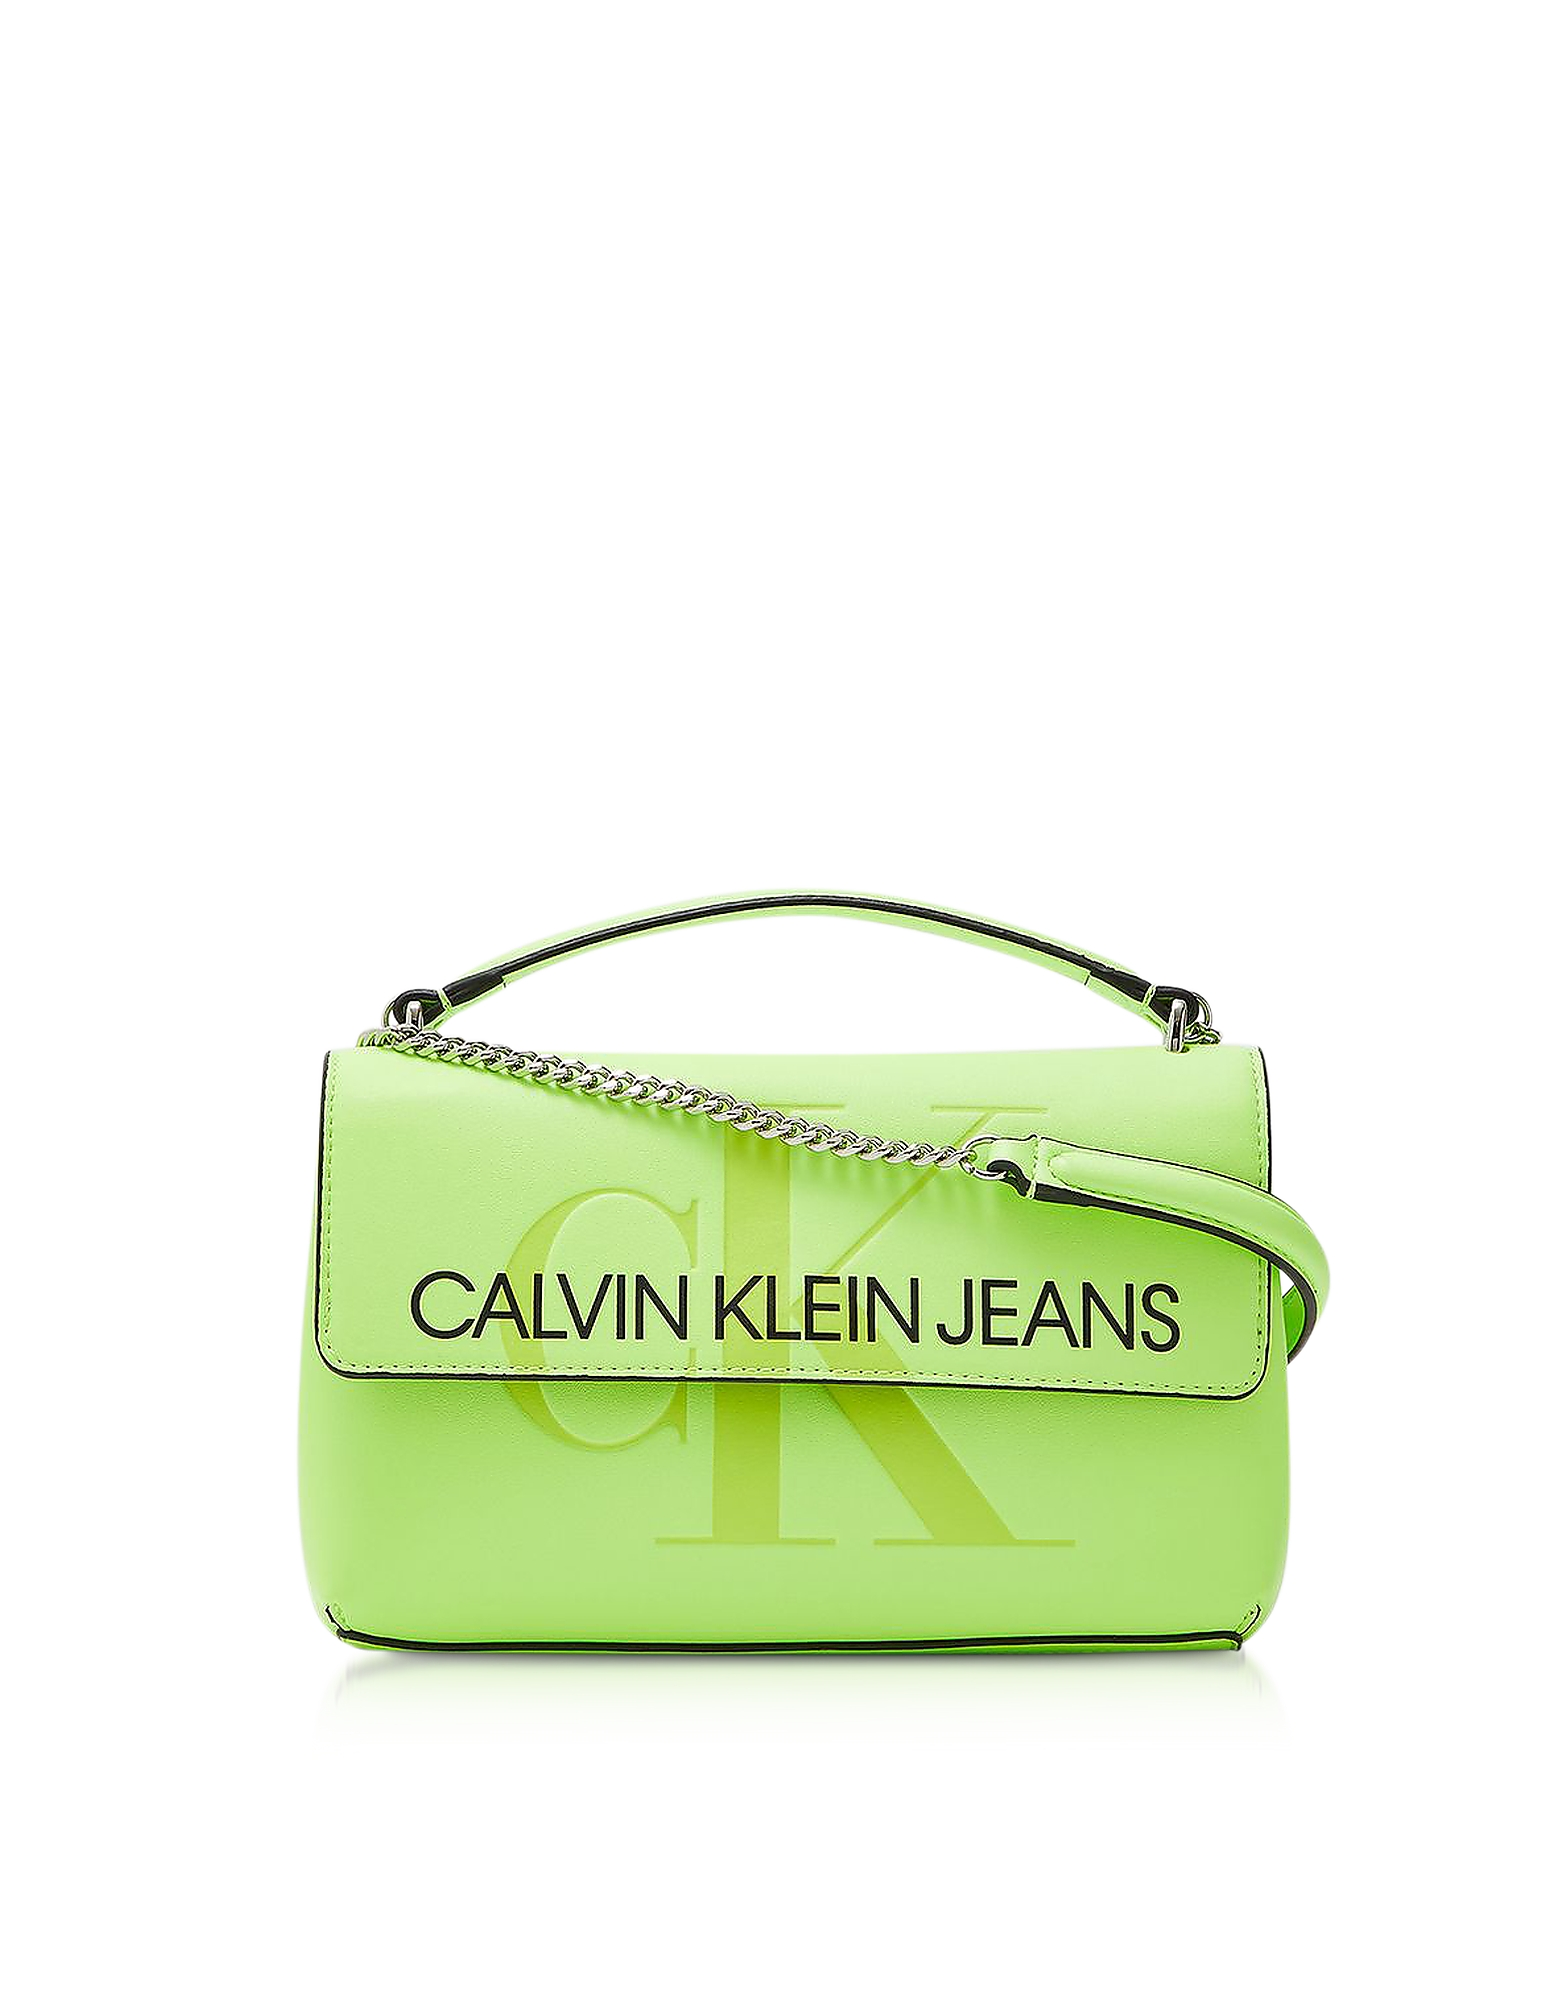 Calvin Klein Collection  Handbags Sculpted Monogram Crossbody Bag w/ Signature Flap